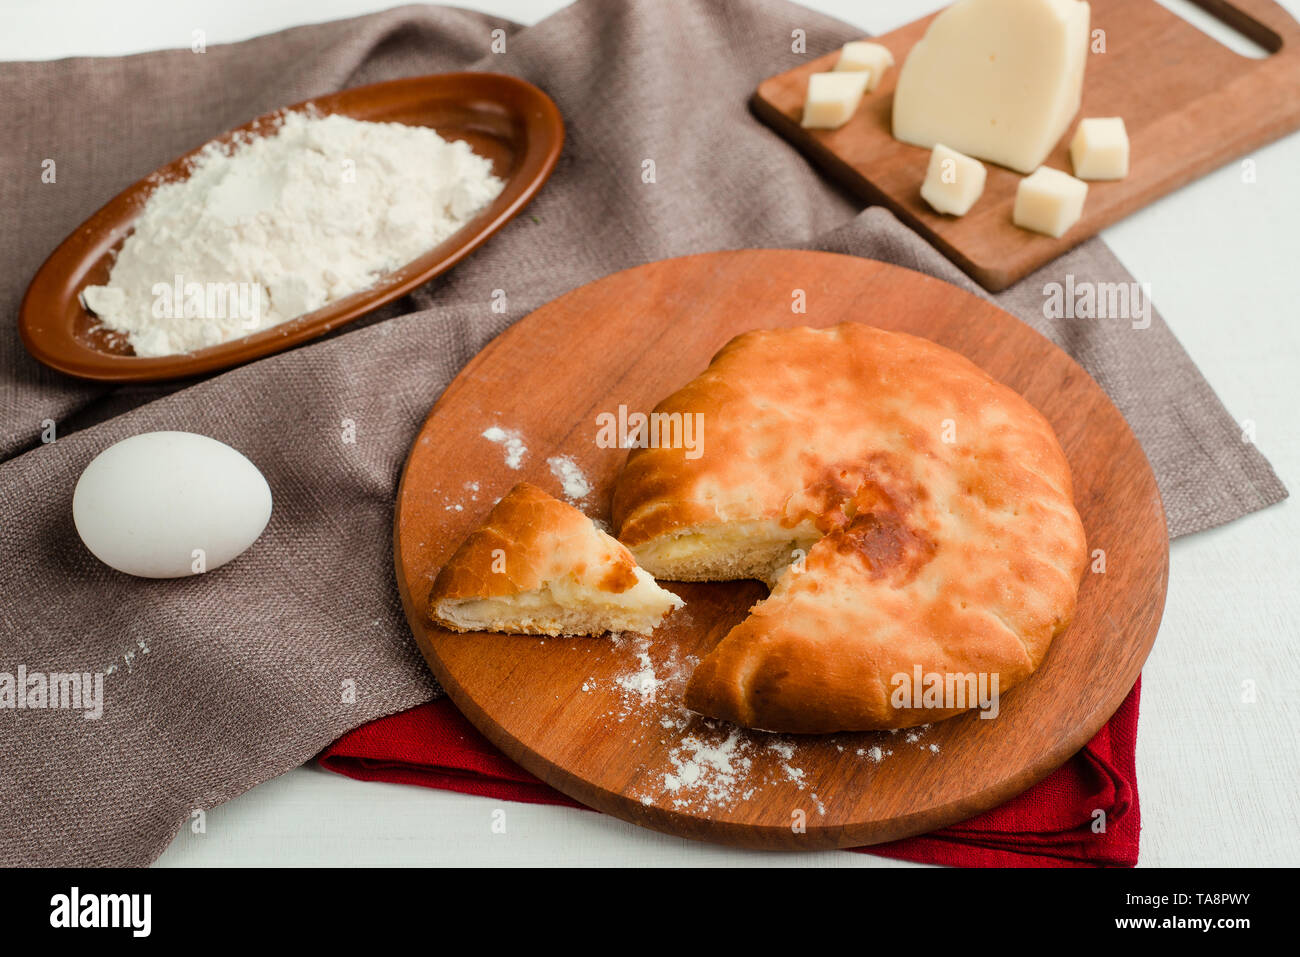 Cottage cheese traditional Russian pie with ingredients. Home cooking food photography in warm tones. - Stock Image